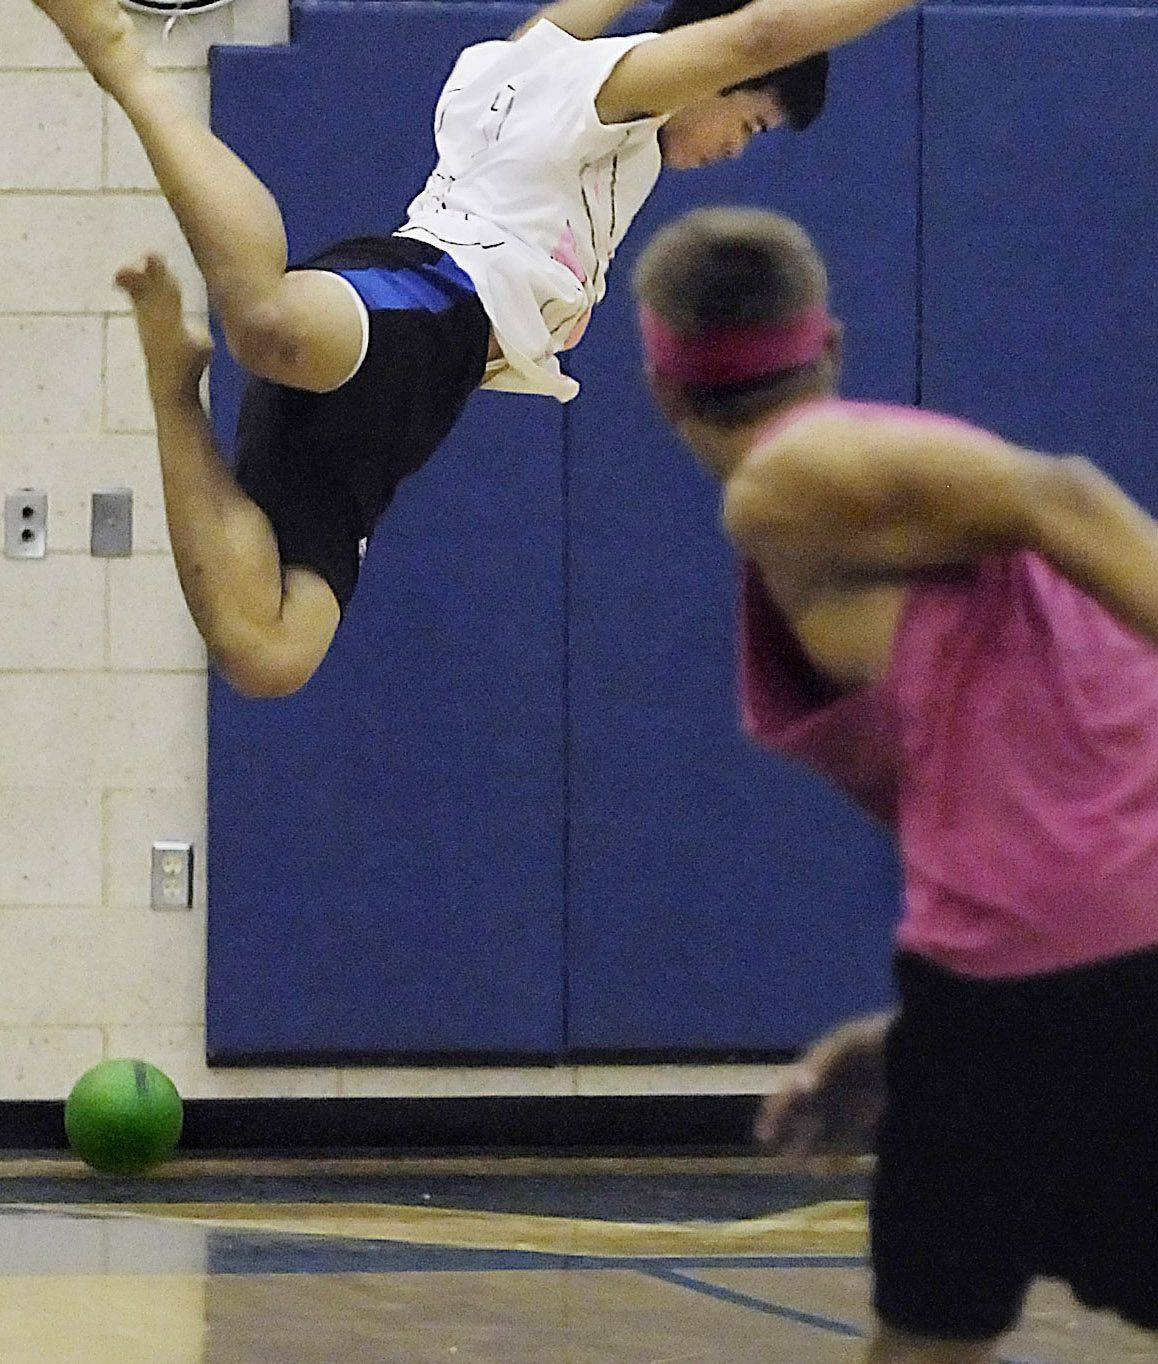 Andy Phorasavong, a senior at Geneva High School, avoids being hit by leaping high above a throw during the championship match of a recent dodgeball tournament to benefit the American Cancer Society. His team won the tournament, which raised $900 in honor of two teachers currently battling breast cancer.